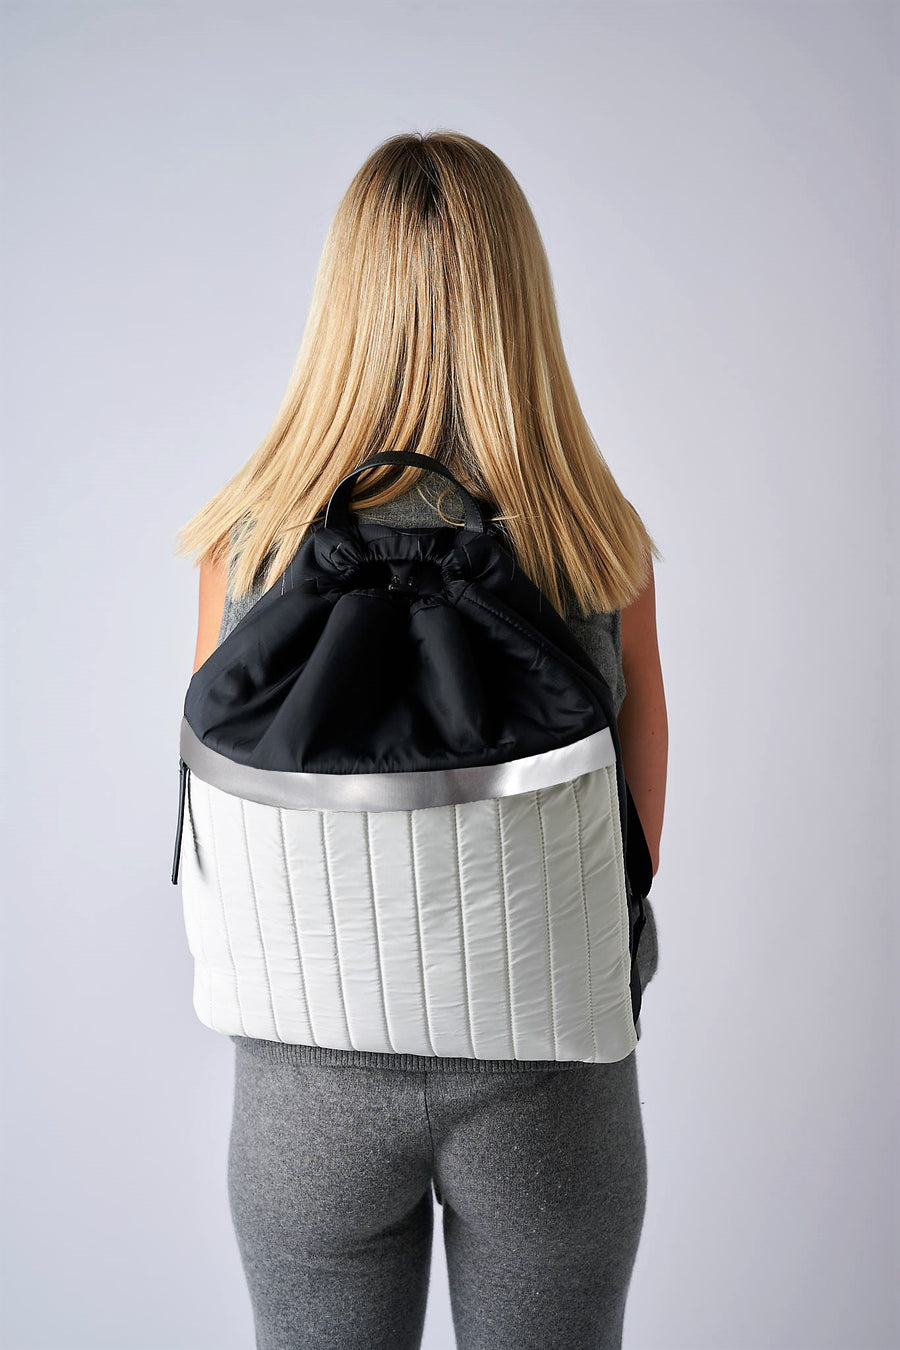 Person wearing black & white nylon cinch top backpack with signature leather and shiny silver details.